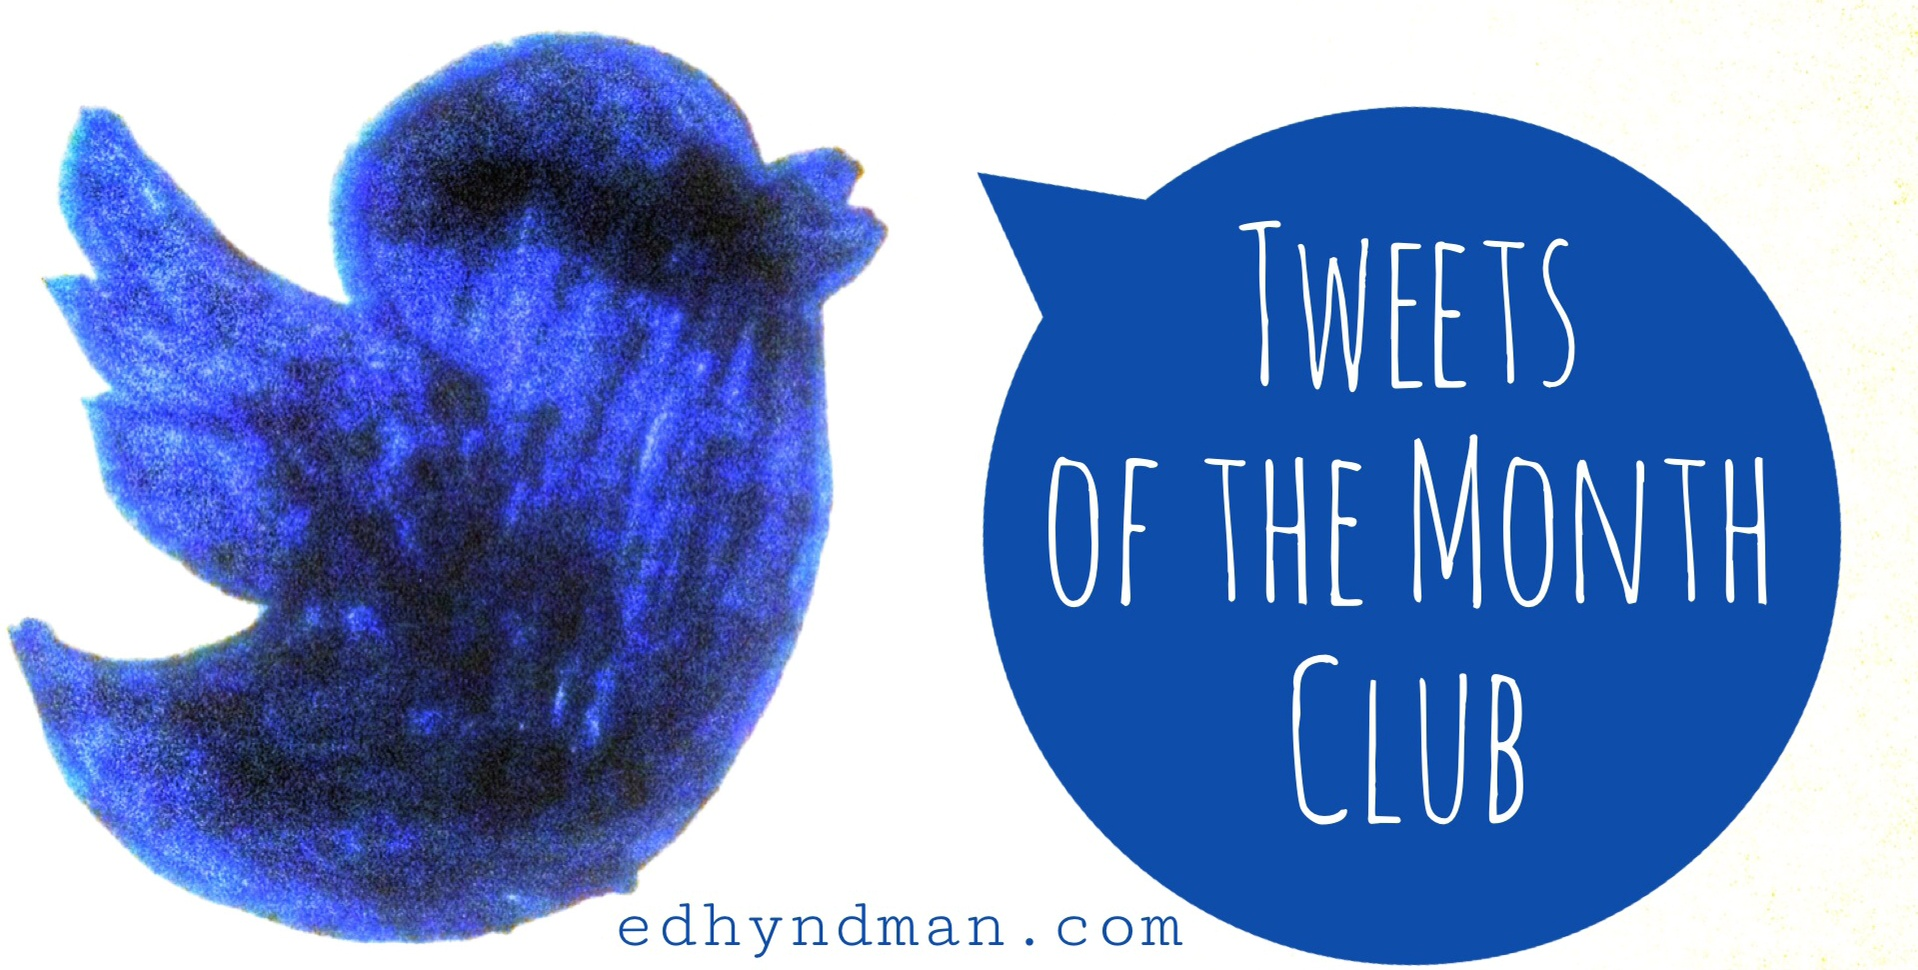 Tweets of the Month Club | May 2017